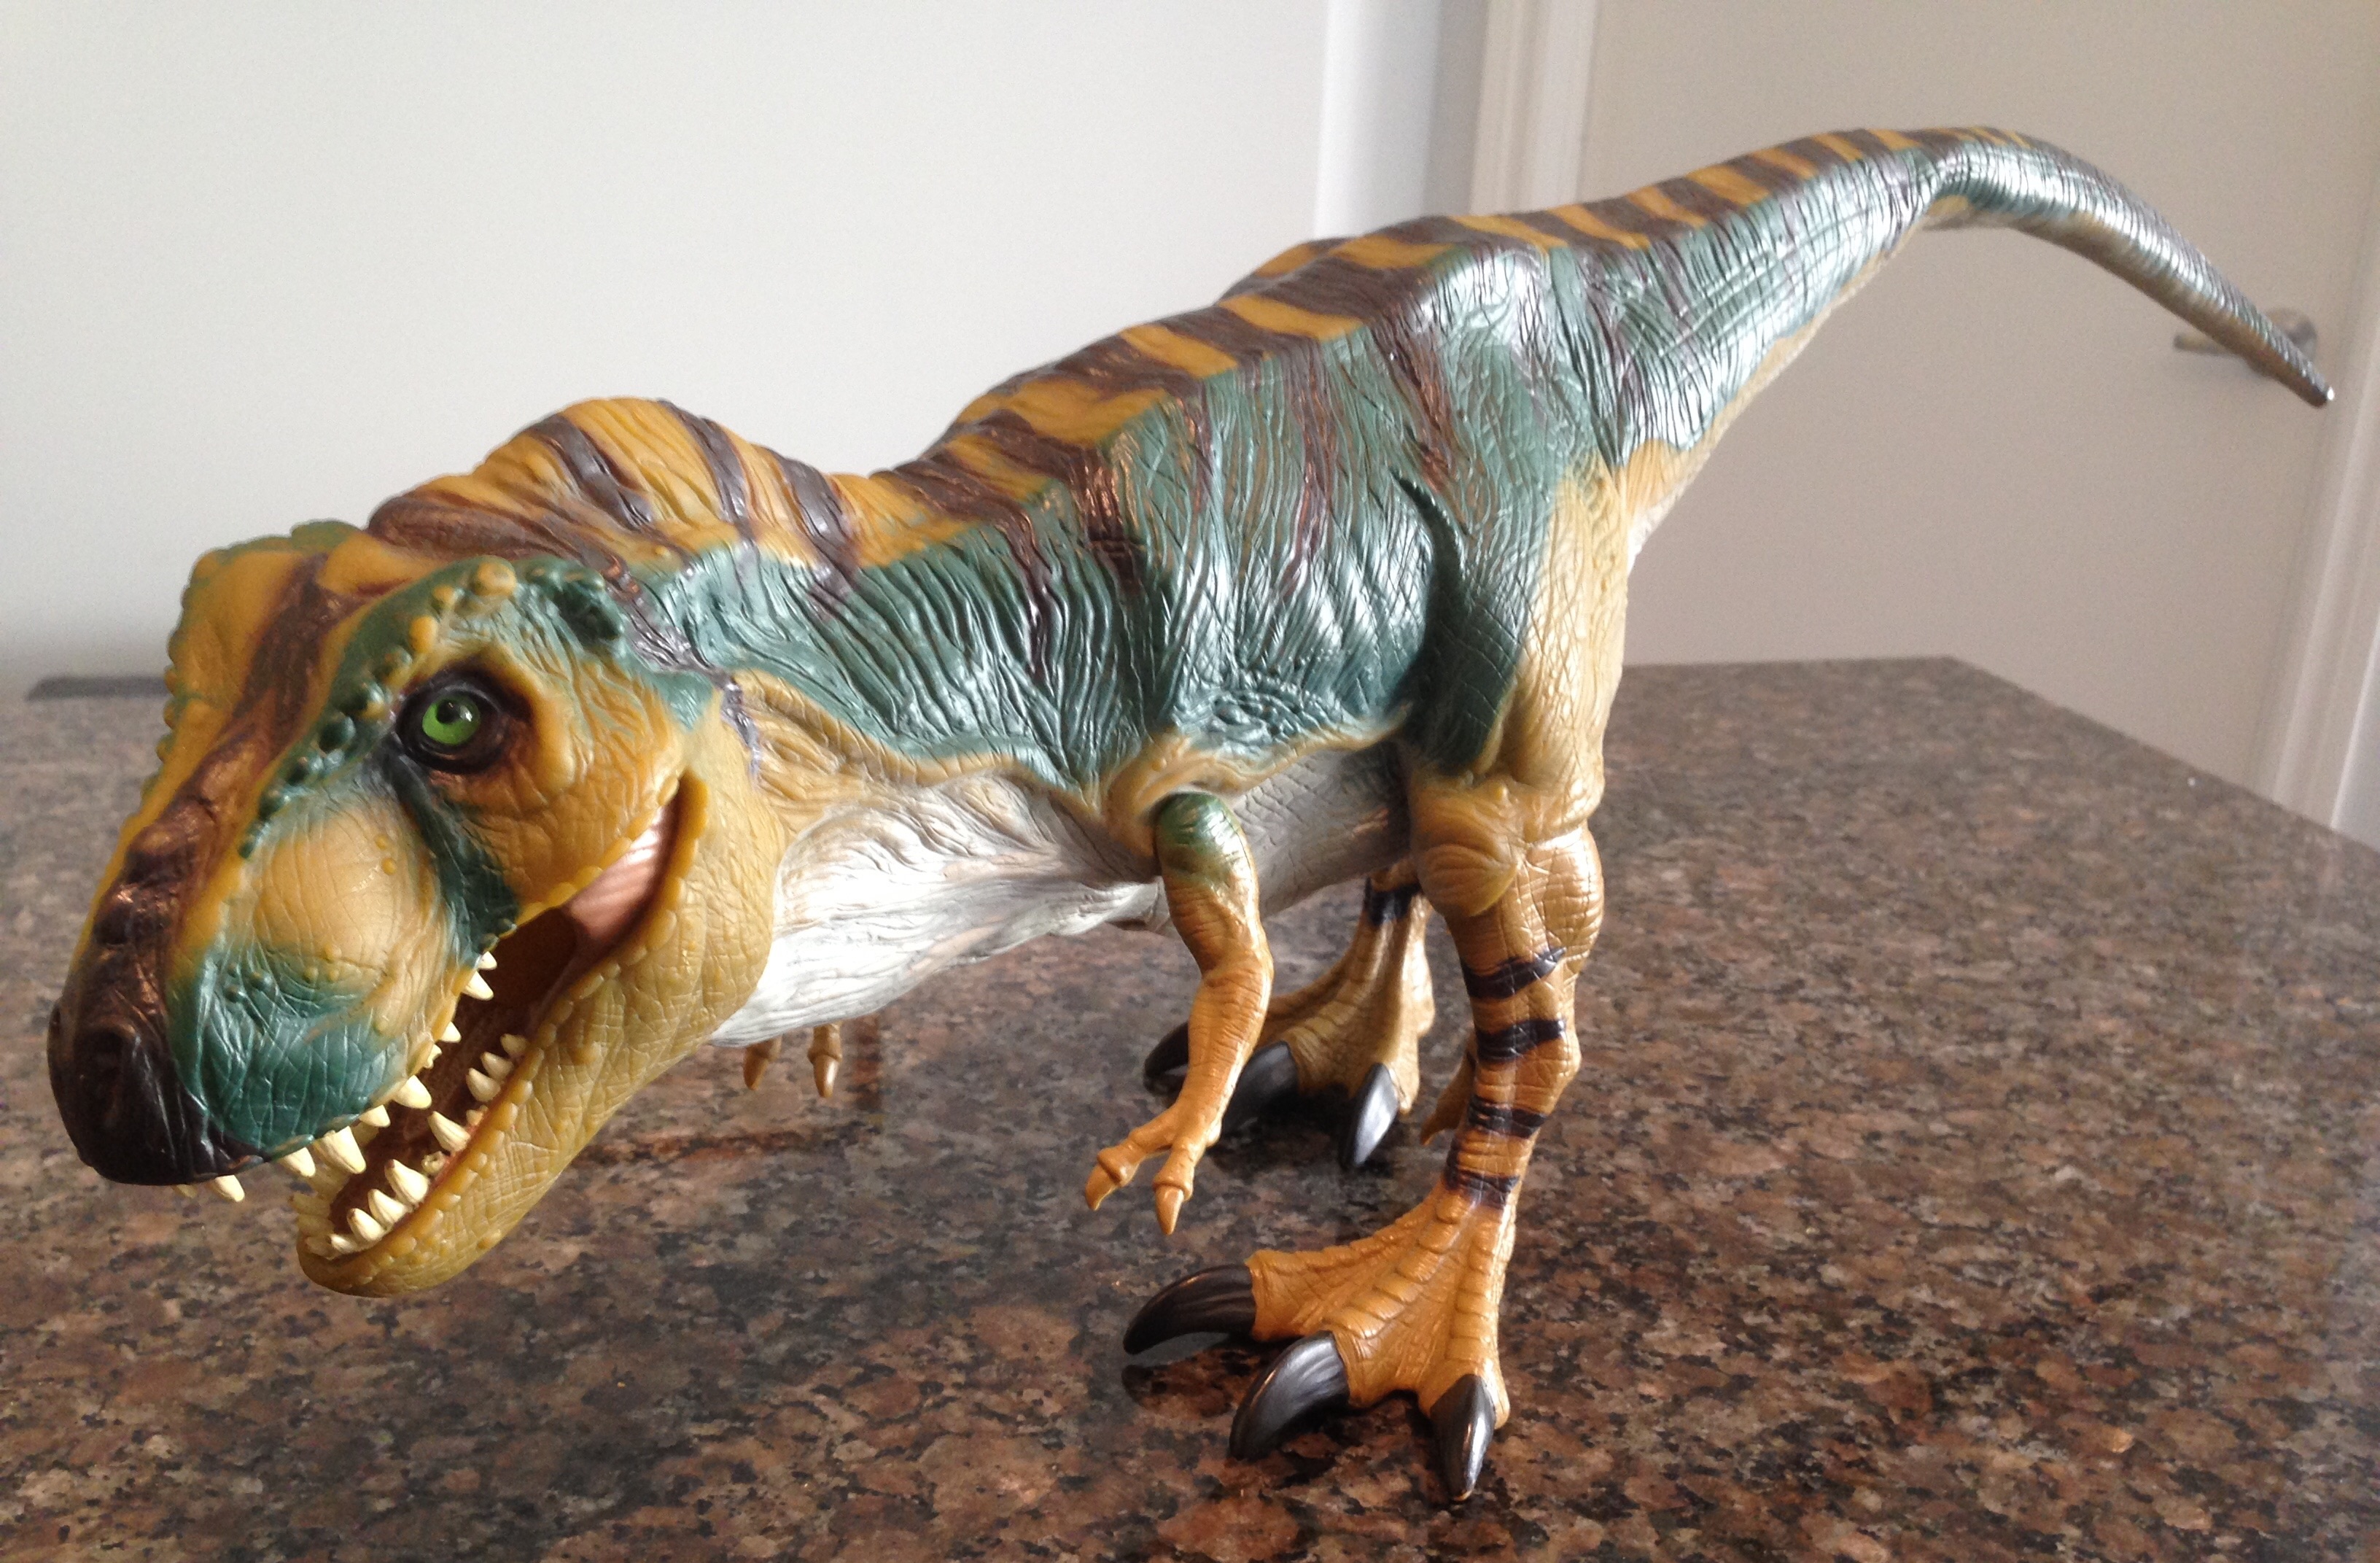 Jurassic Park Toys T Rex : Tyrannosaurus rex bull from the lost world jurassic park